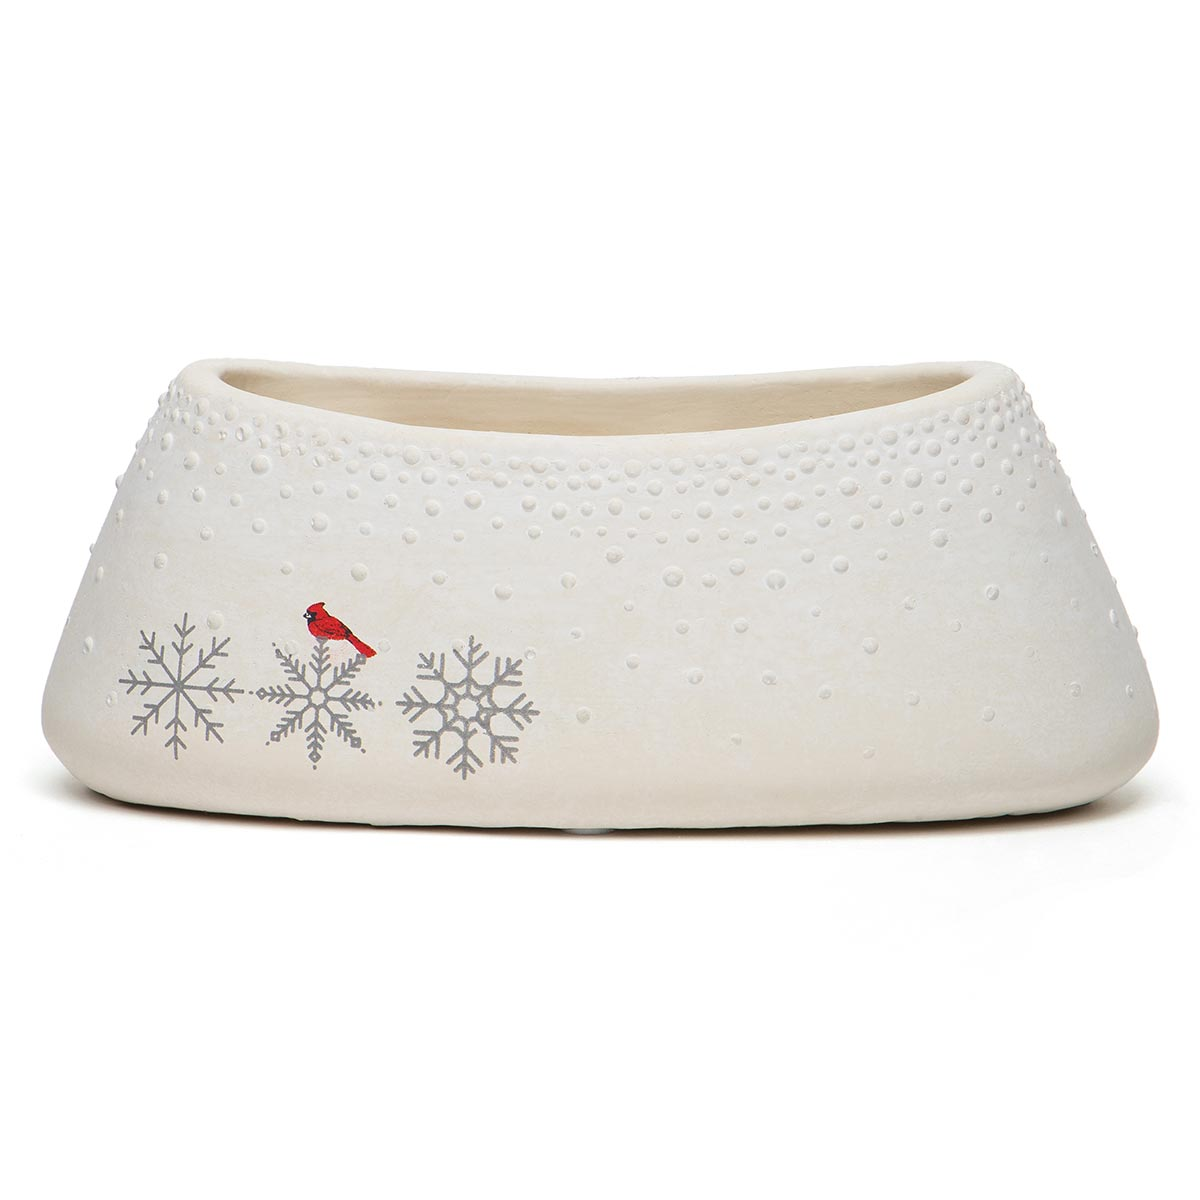 CARDINAL AND SNOWFLAKE OBLONG CONCRETE POT WHITE